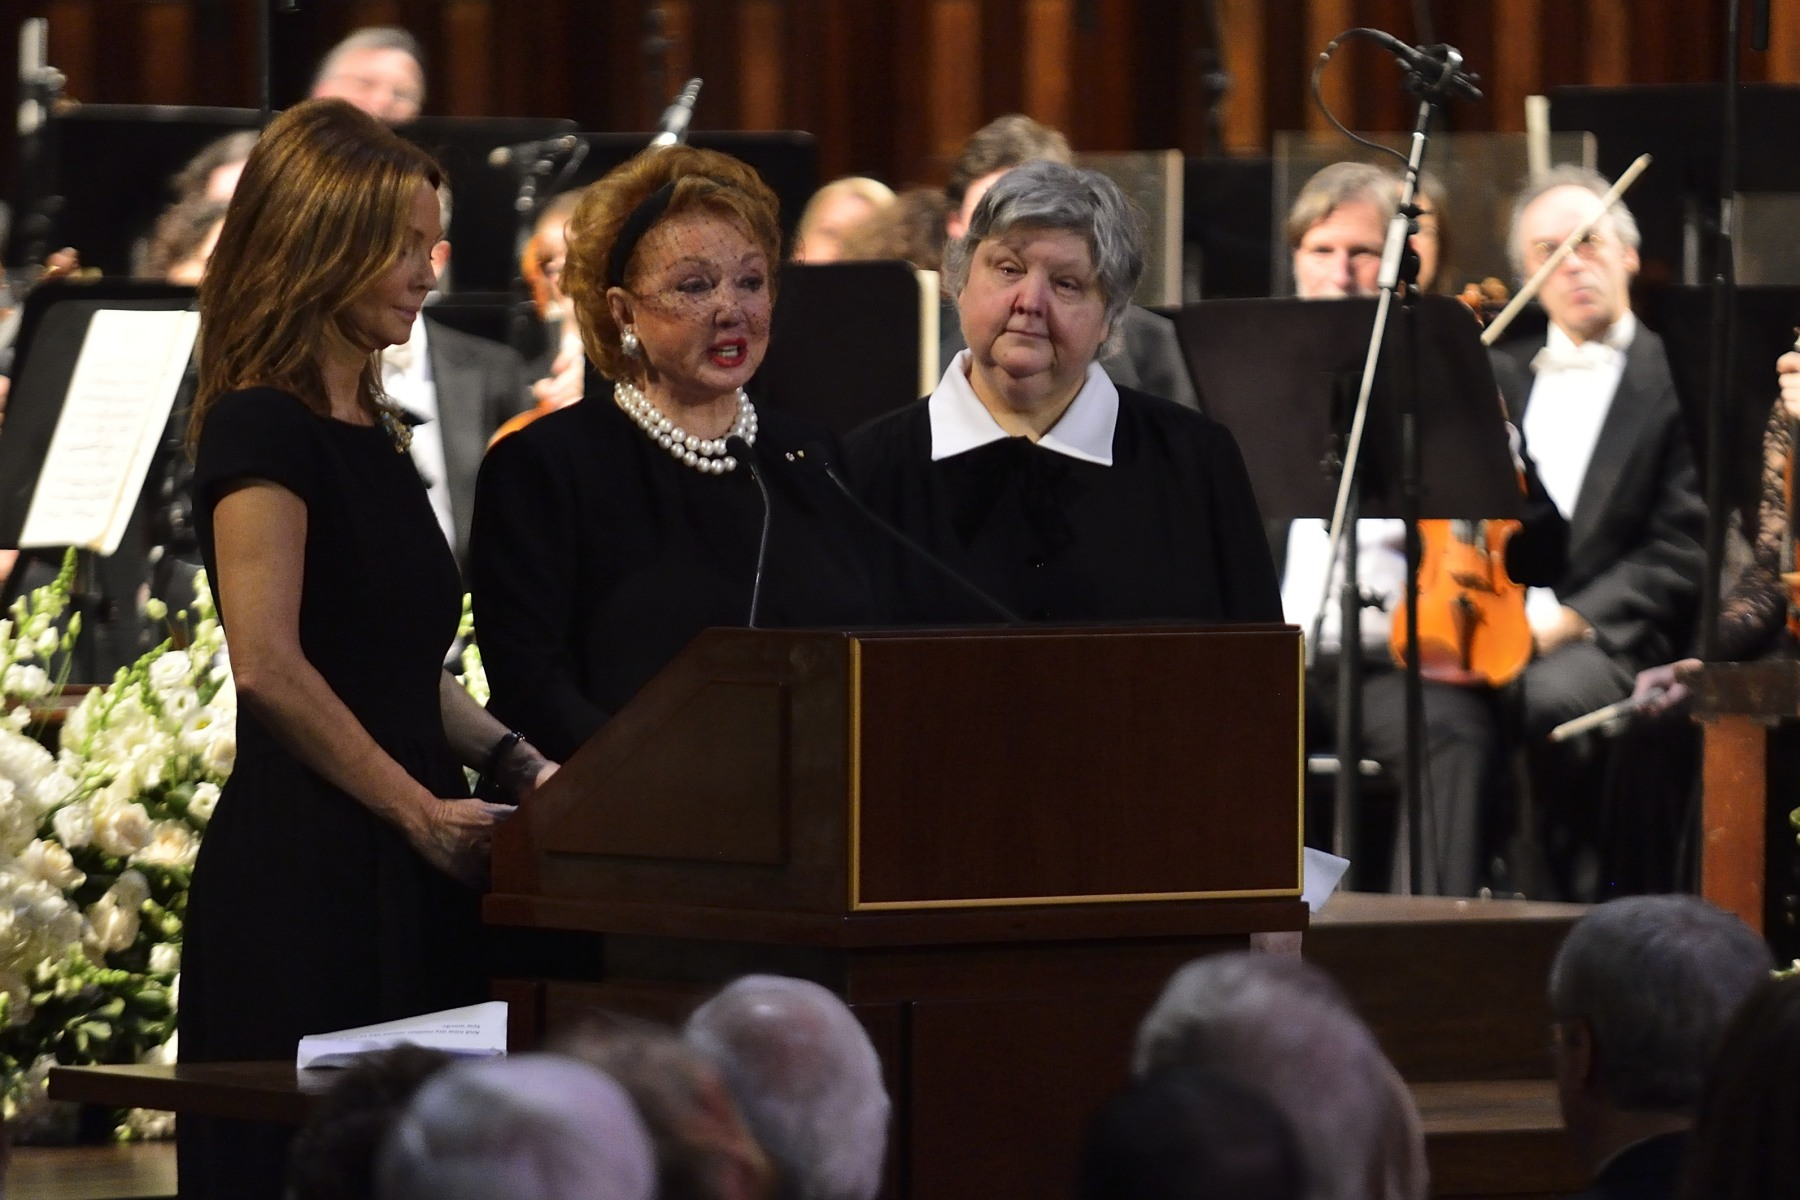 Jacqueline Desmarais (centre), wife of Paul G. Desmarais, was accompanied by her daughters Sophie (left) and Louise (right) for the family eulogy.